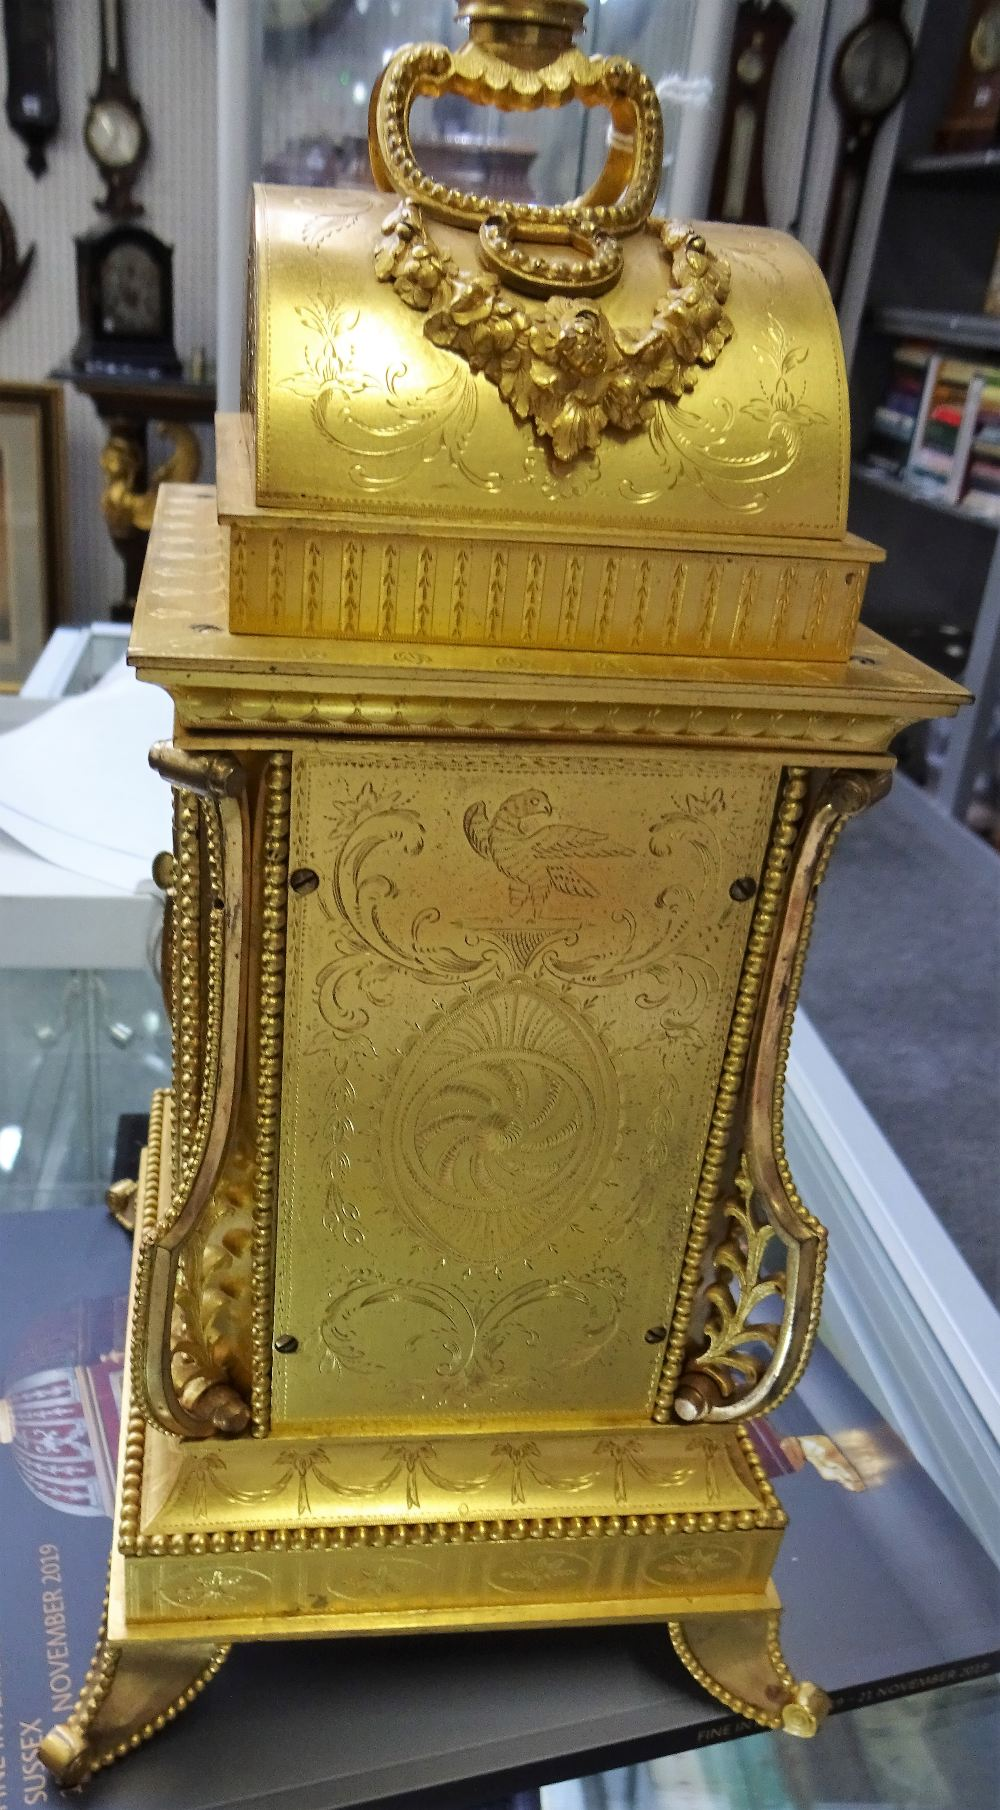 Lot 697 - A rare Chinese ormolu and paste-set mantel clock In the style of John Mottram or Henry Borrell,